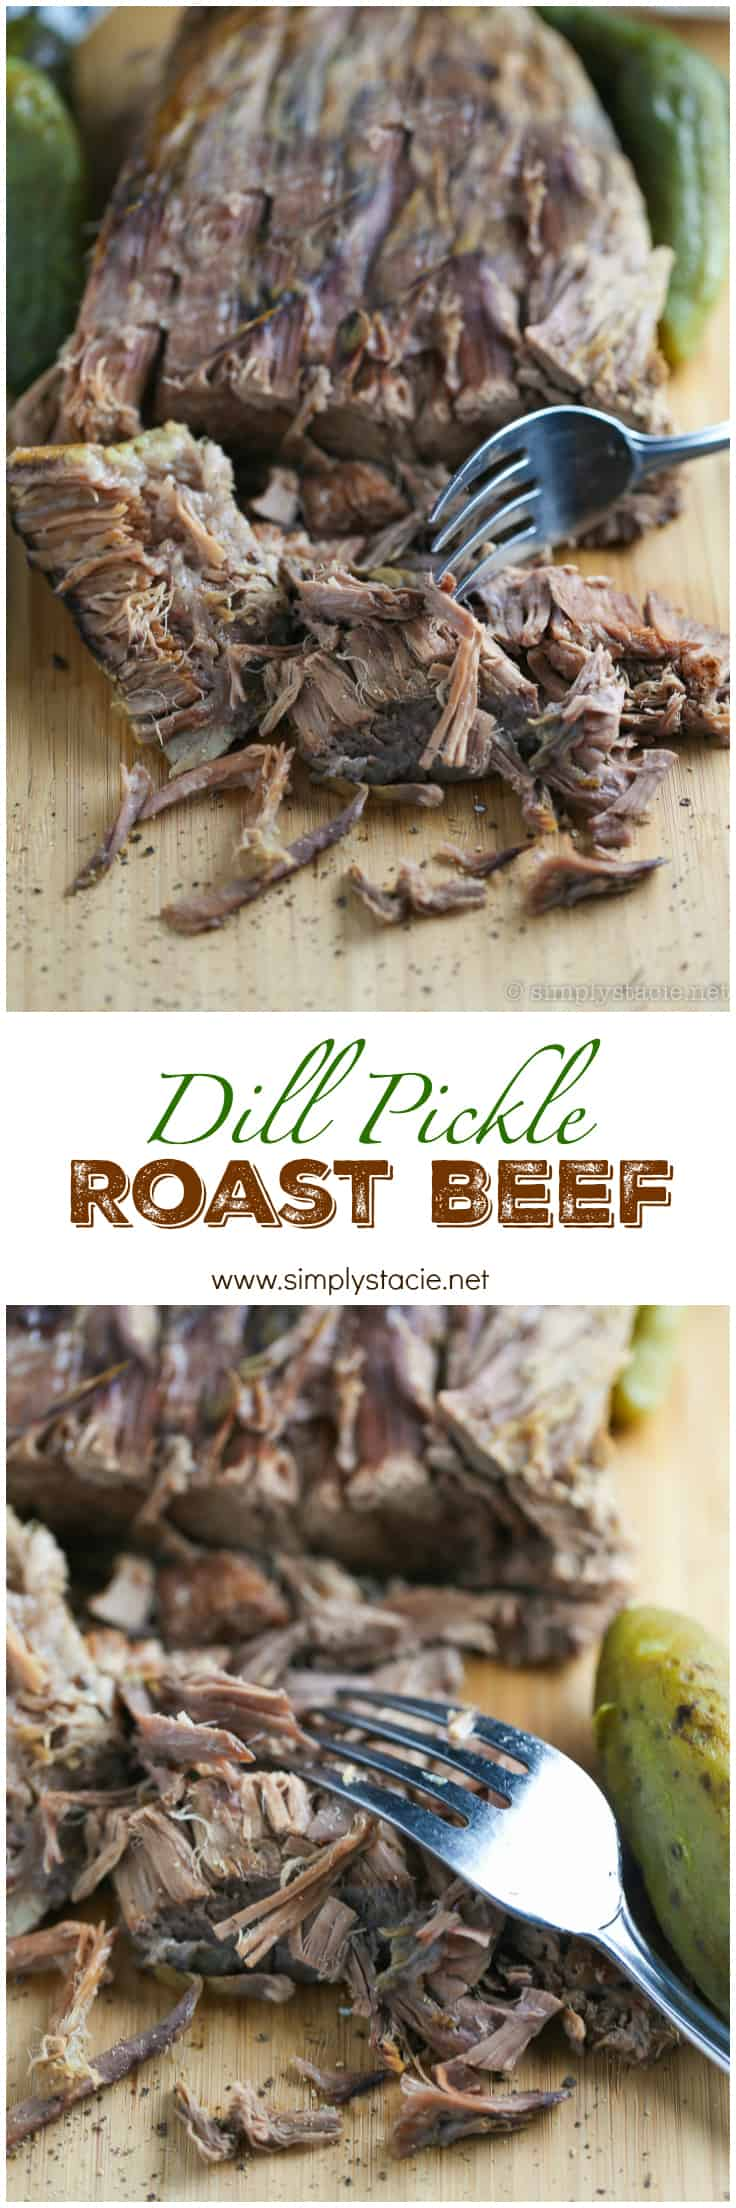 Dill Pickle Roast Beef - This might be the most simple slow cooker recipe ever! Dump a jar of pickles in a slow cooker with your preferred cut of beef. You'll be amazed in 8 hours!